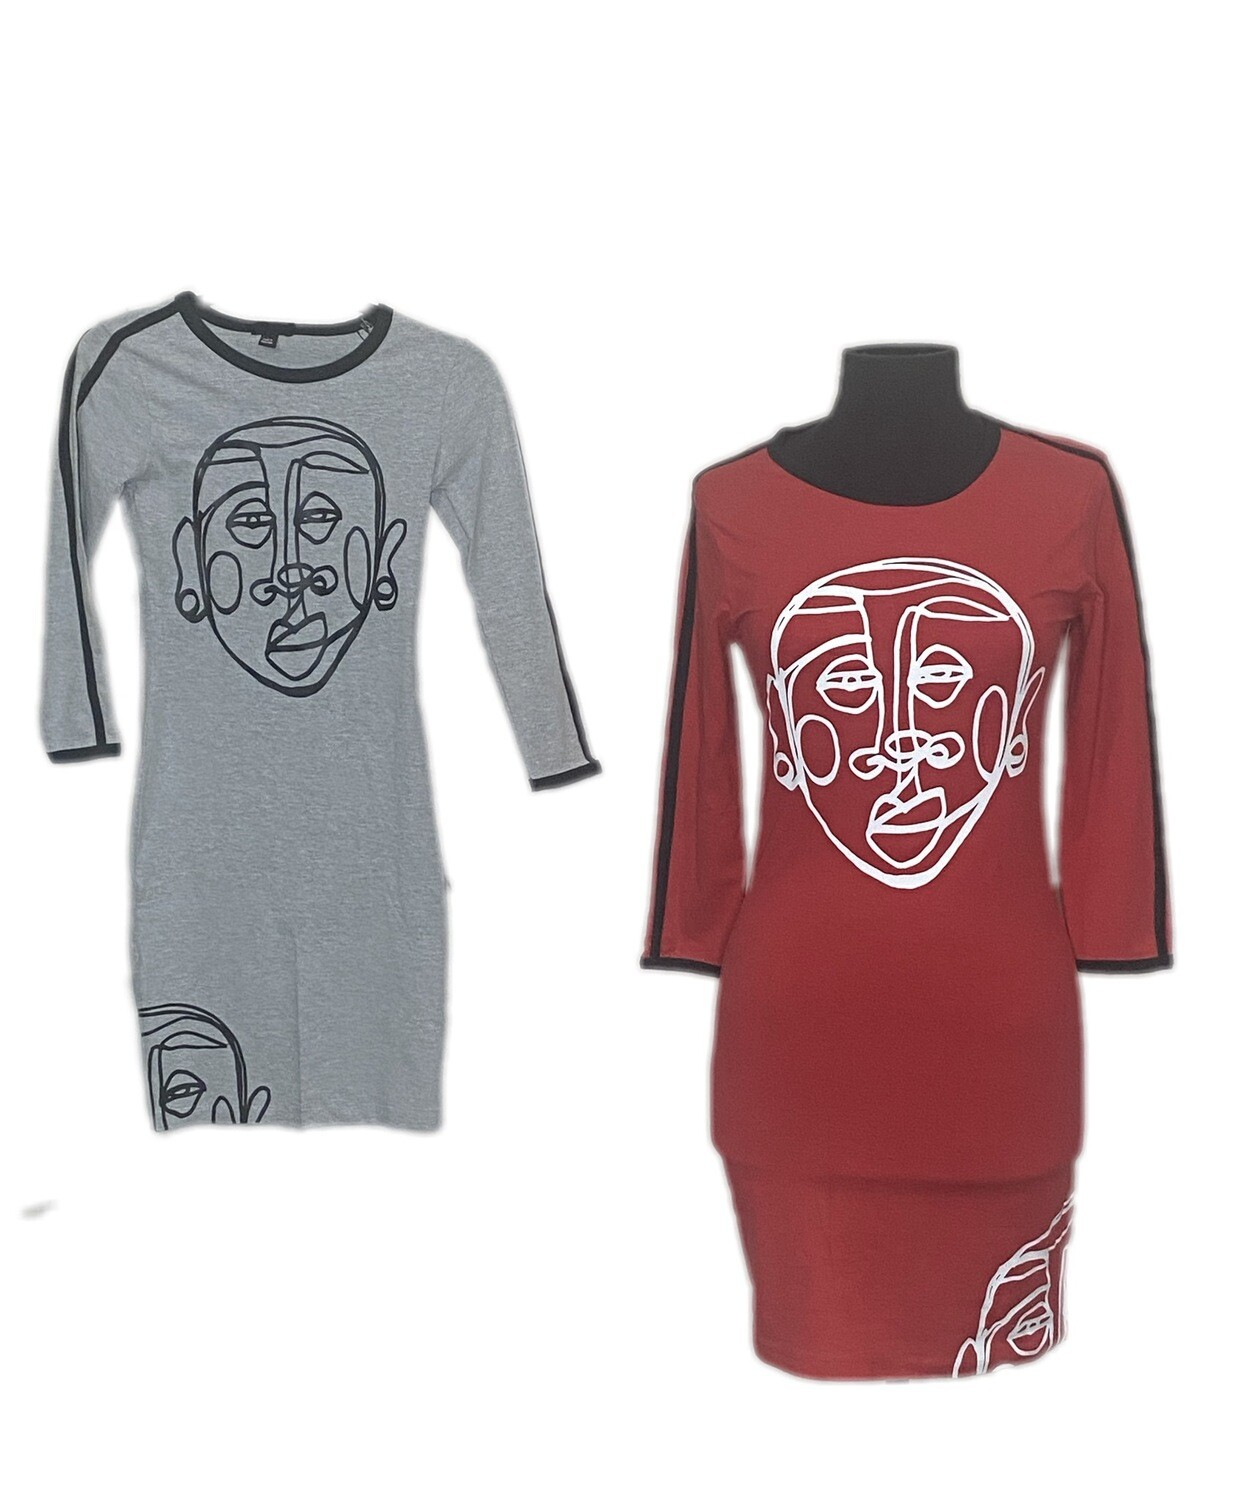 'Face Yourself' Dress